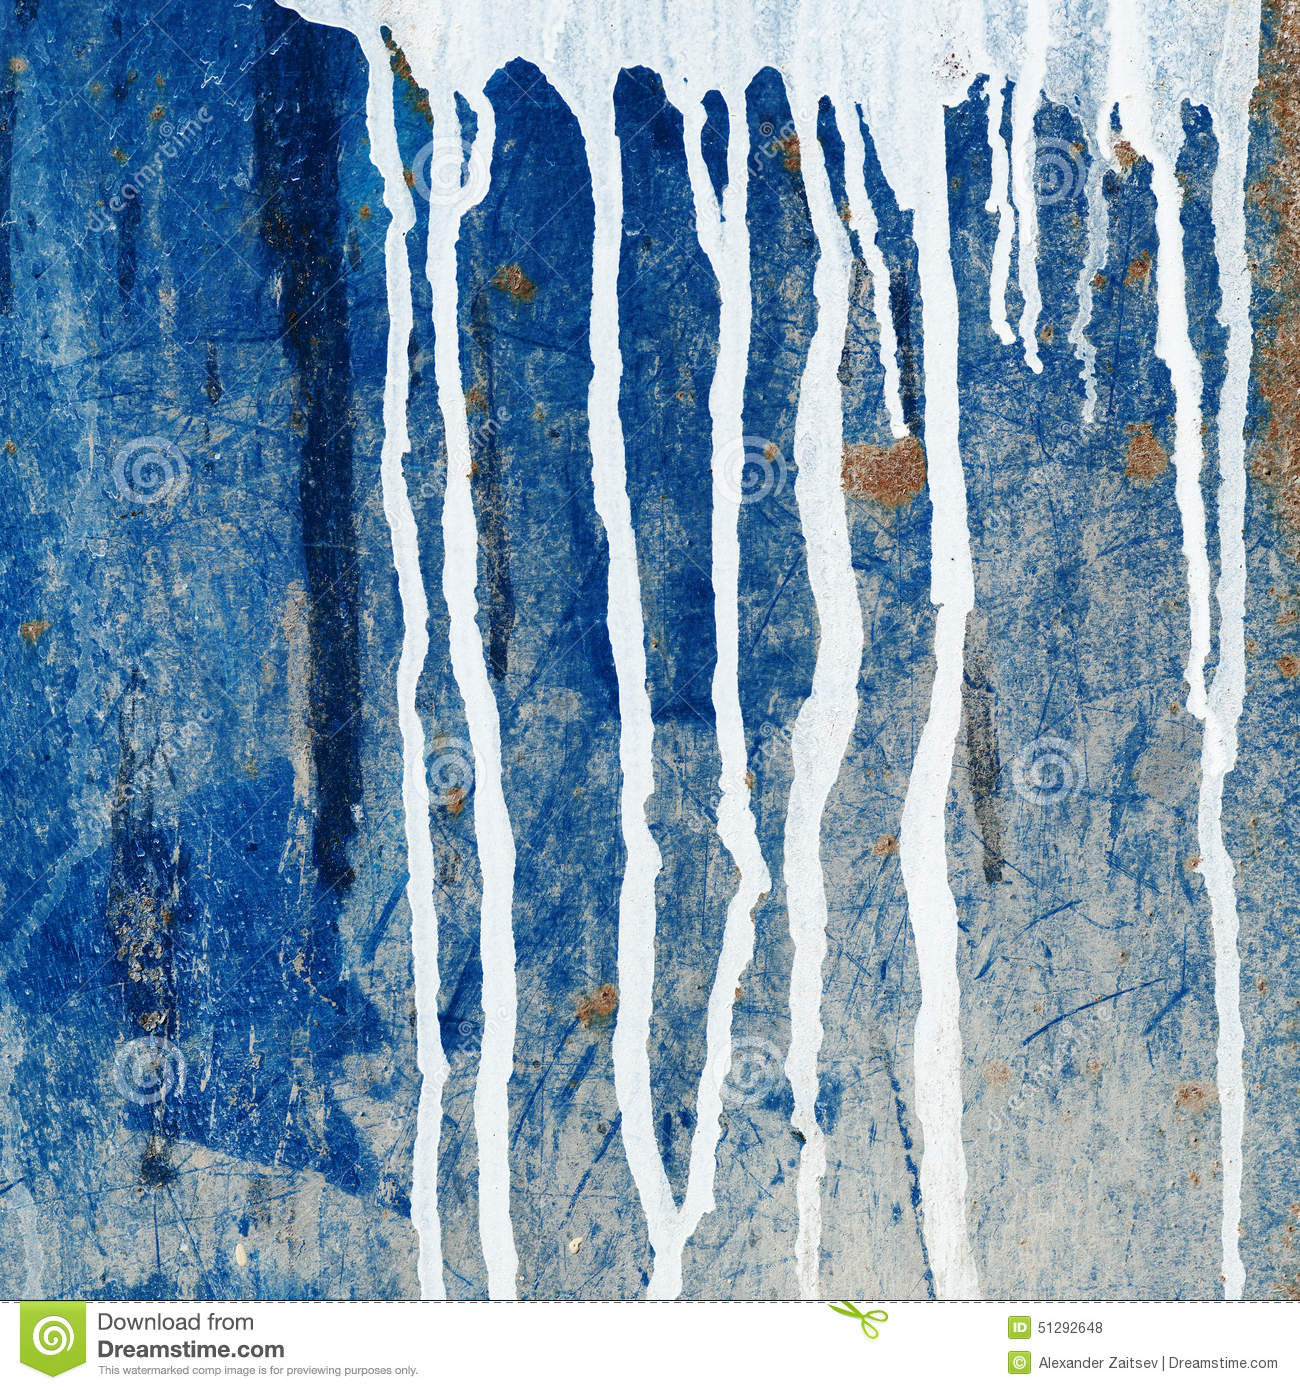 Dripping Paint Wall Design : Paint dripping wall stock illustration image